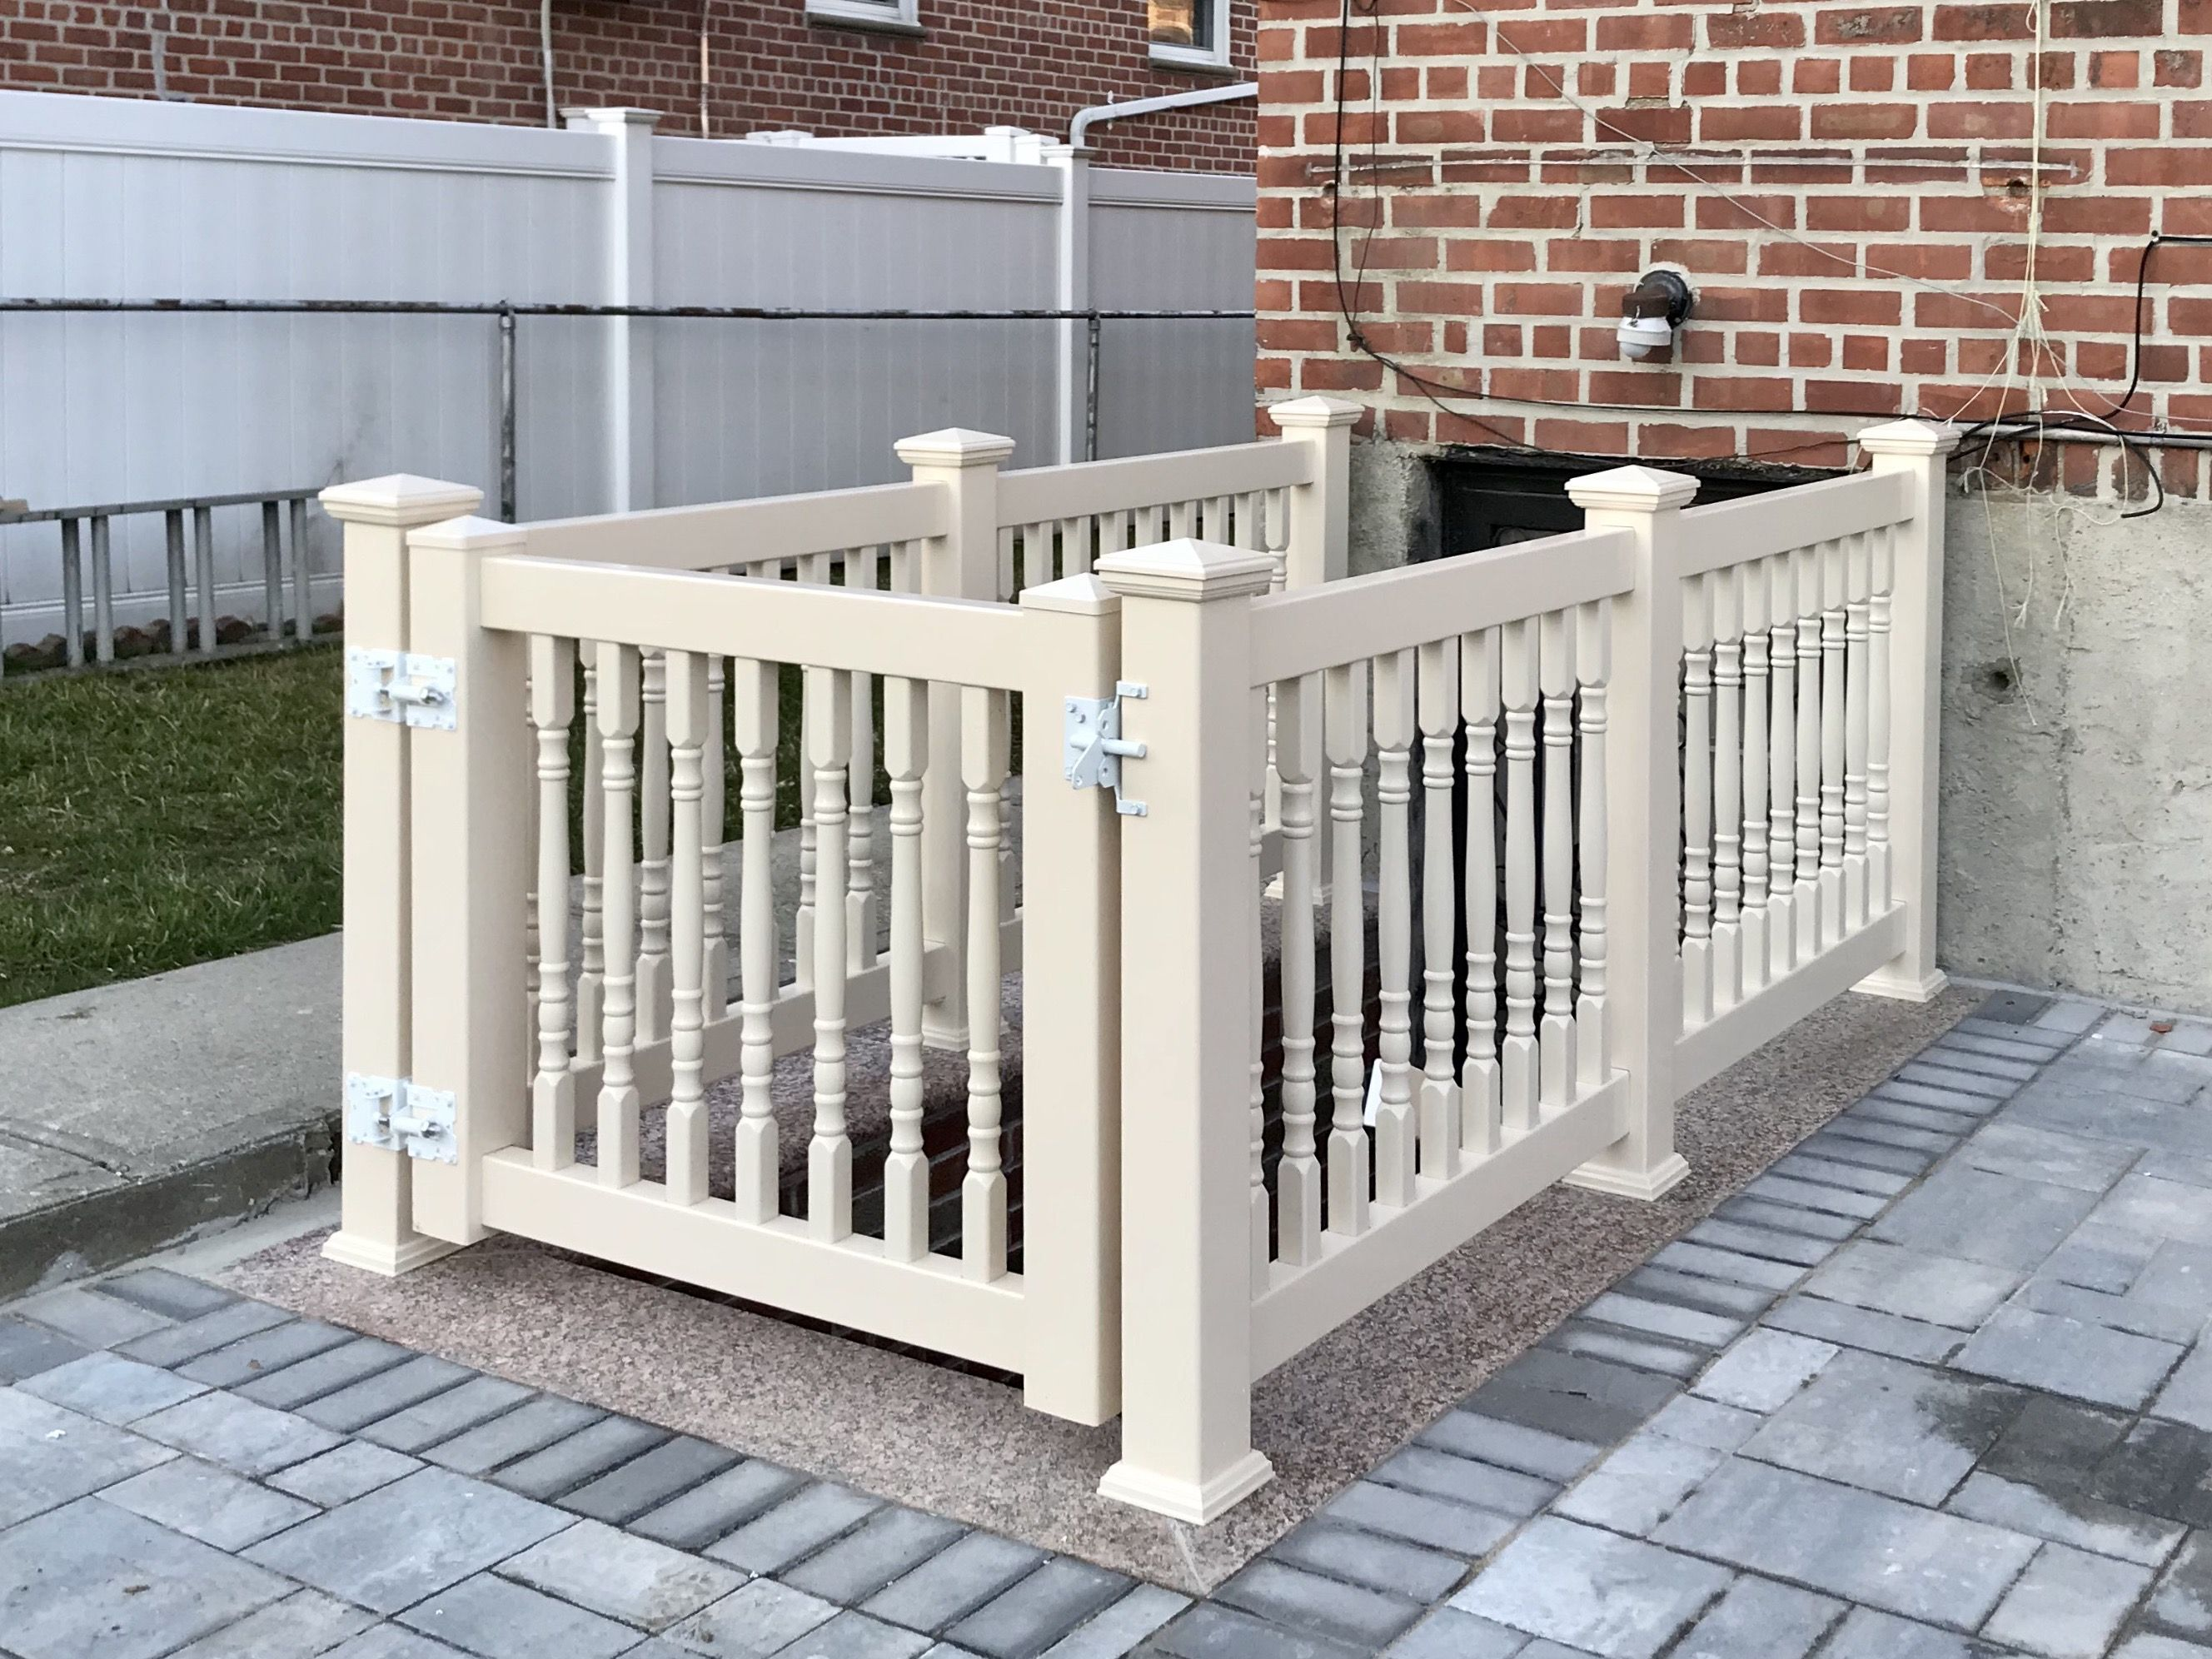 3 High Tan Pvc Baluster Rails With Gate In Middle Village Ny White Stainless Steel Hardware Fabricated And Installed By Libert In 2020 Pvc Railing Wood Railing Pvc